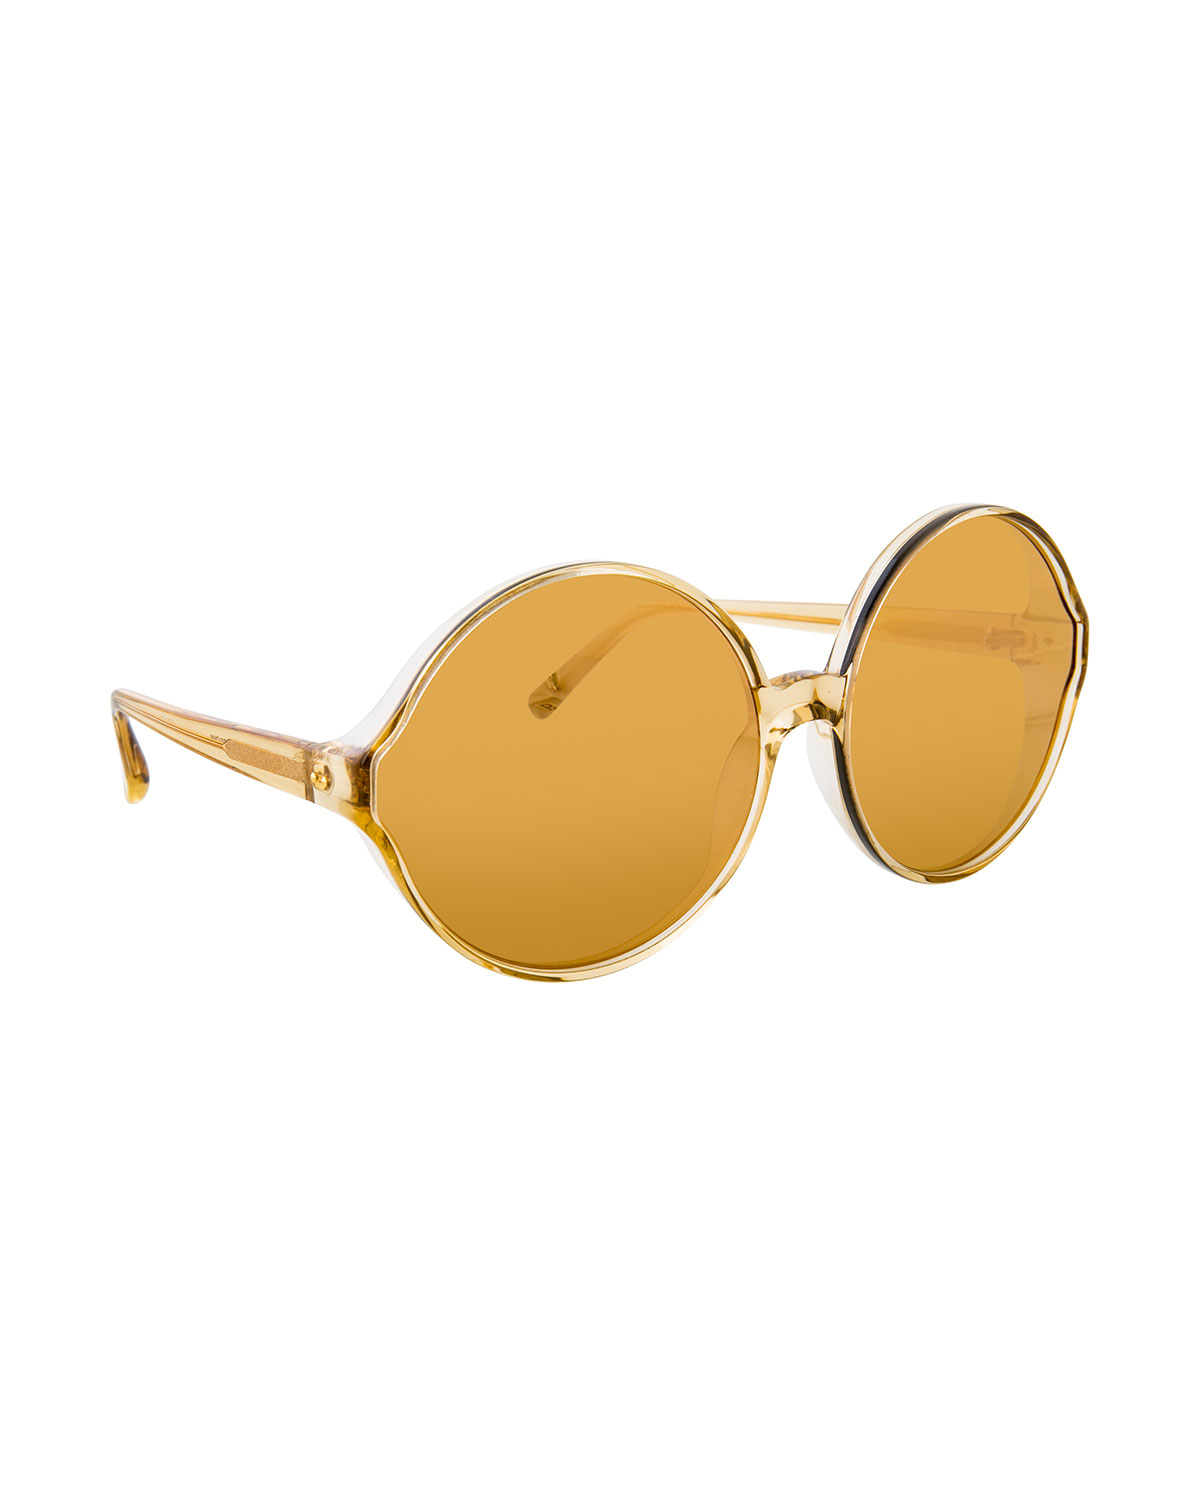 ad65f46b16f Linda Farrow Transparent Round Sunglasses